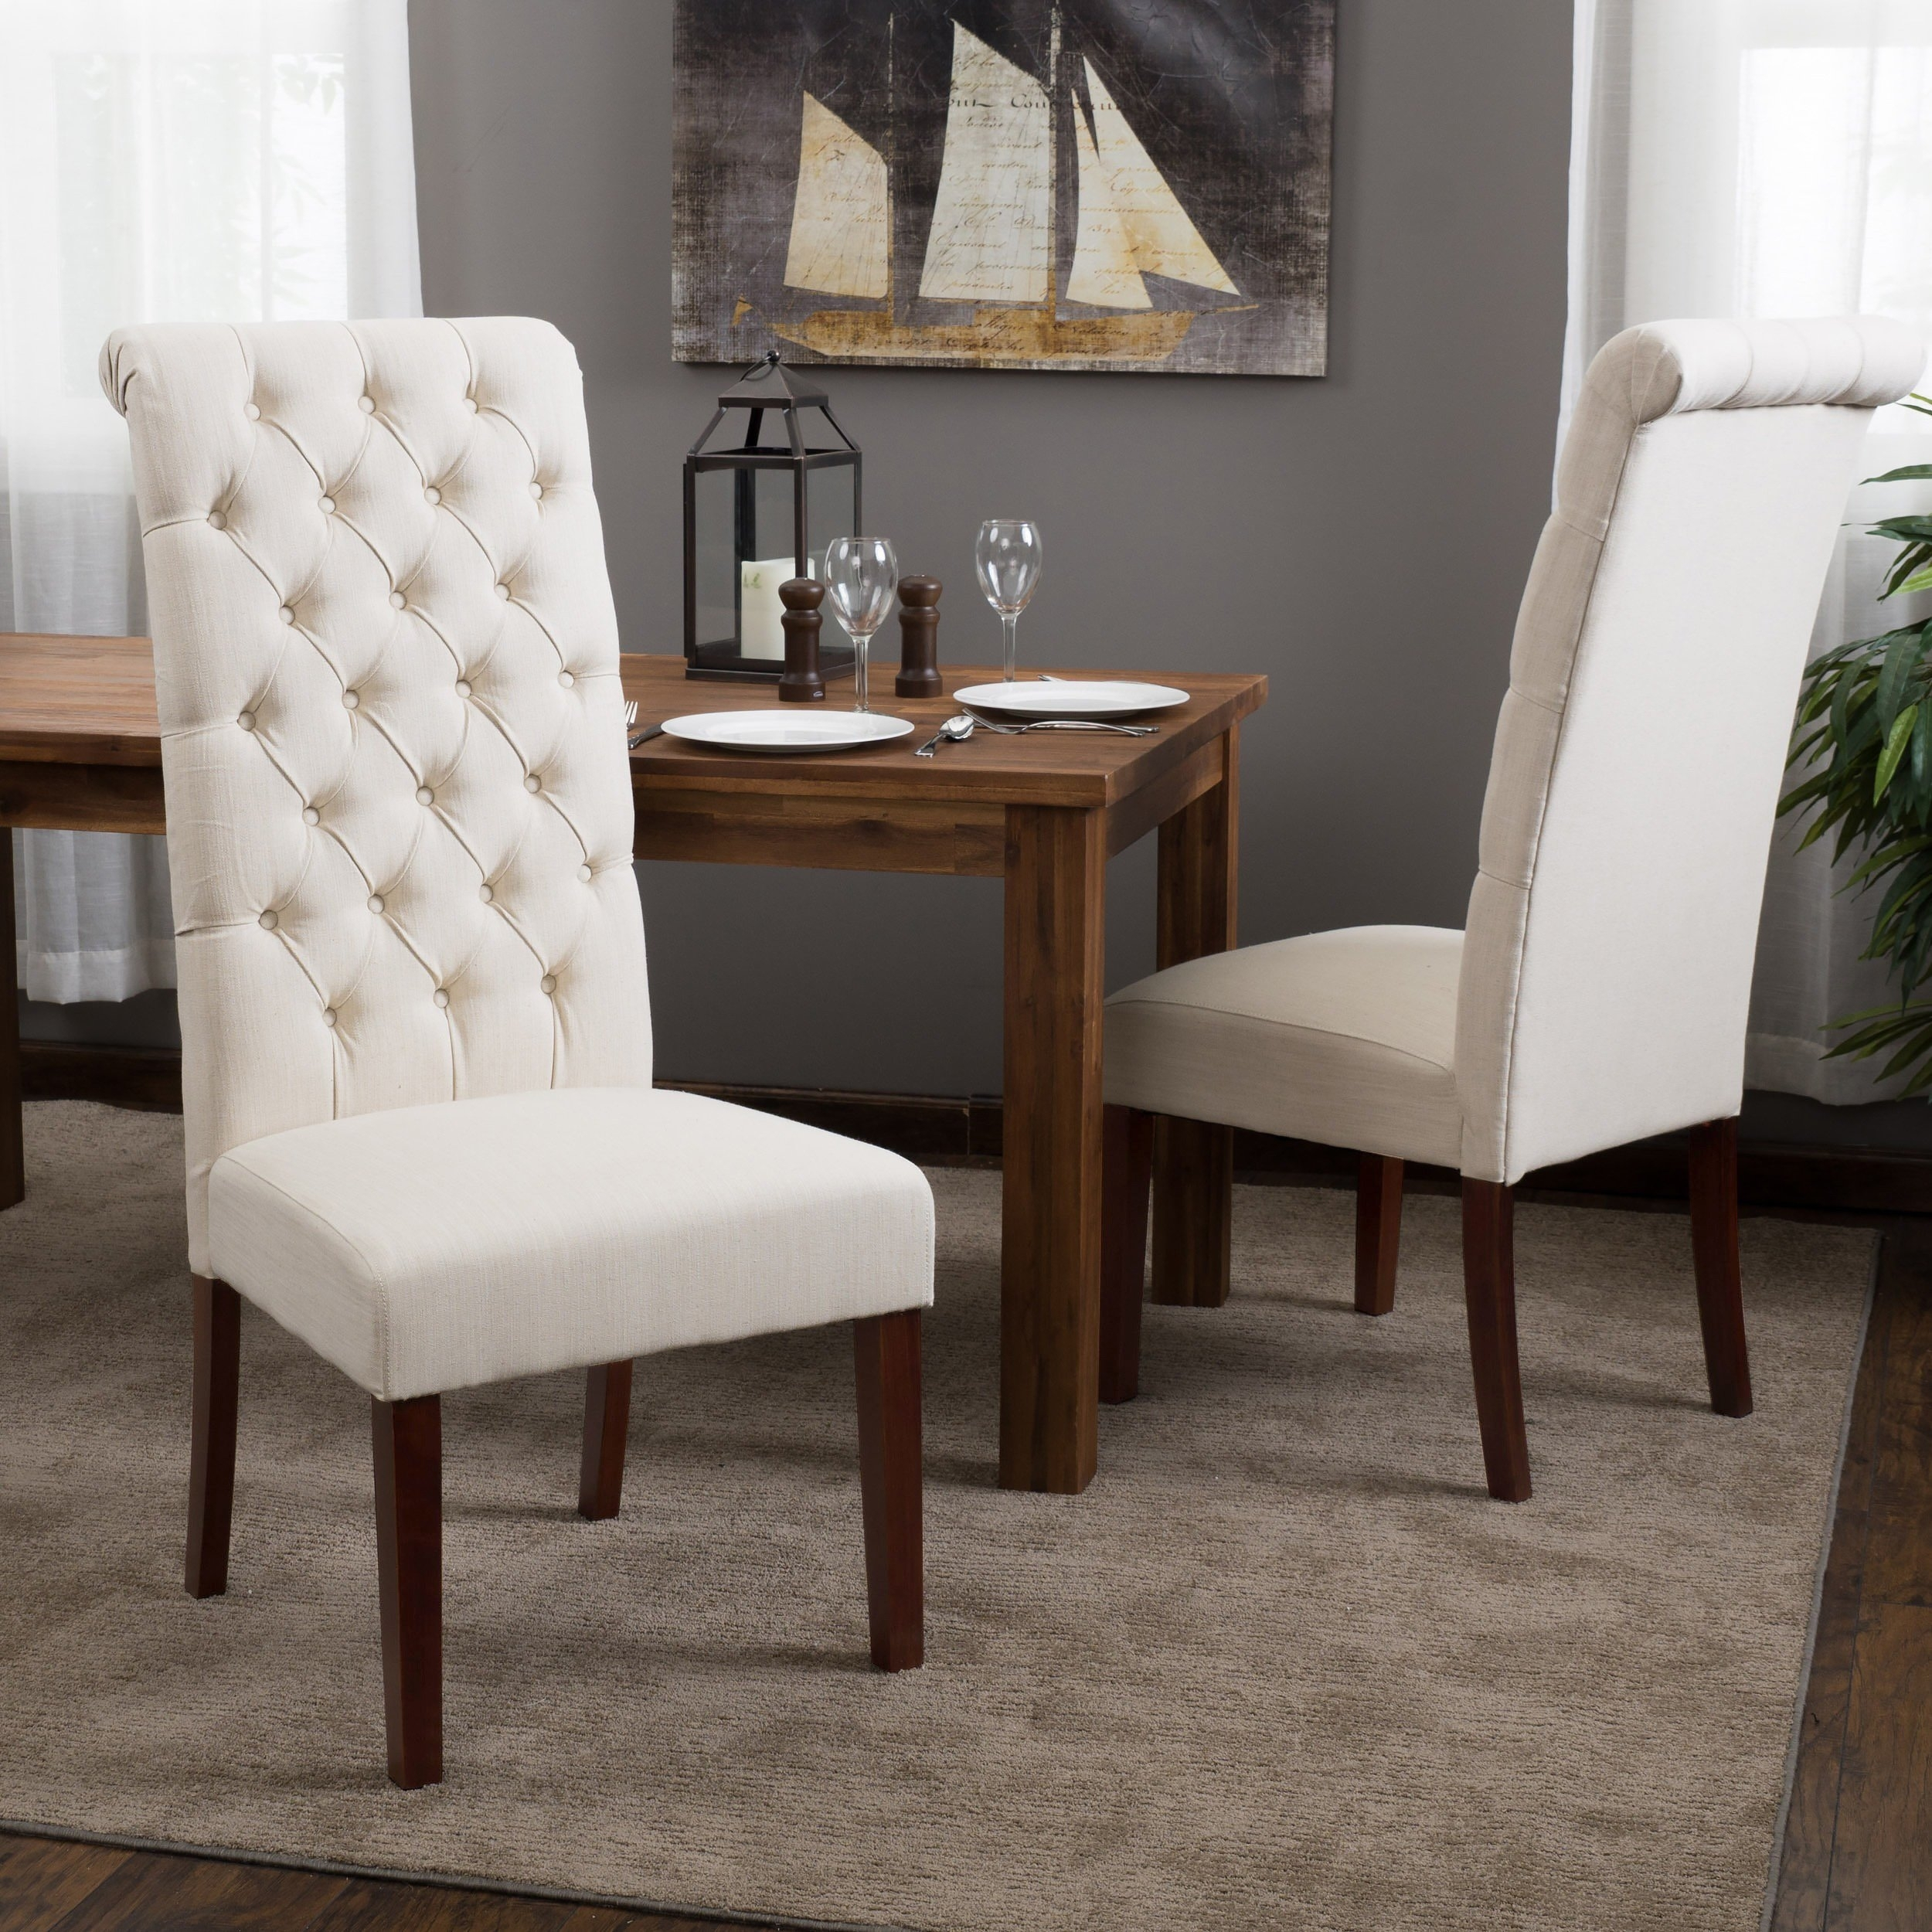 Shop Tall Natural Tufted Fabric Dining Chair (Set Of 2) Inside Most Up To Date Caira Black 5 Piece Round Dining Sets With Diamond Back Side Chairs (Image 15 of 20)